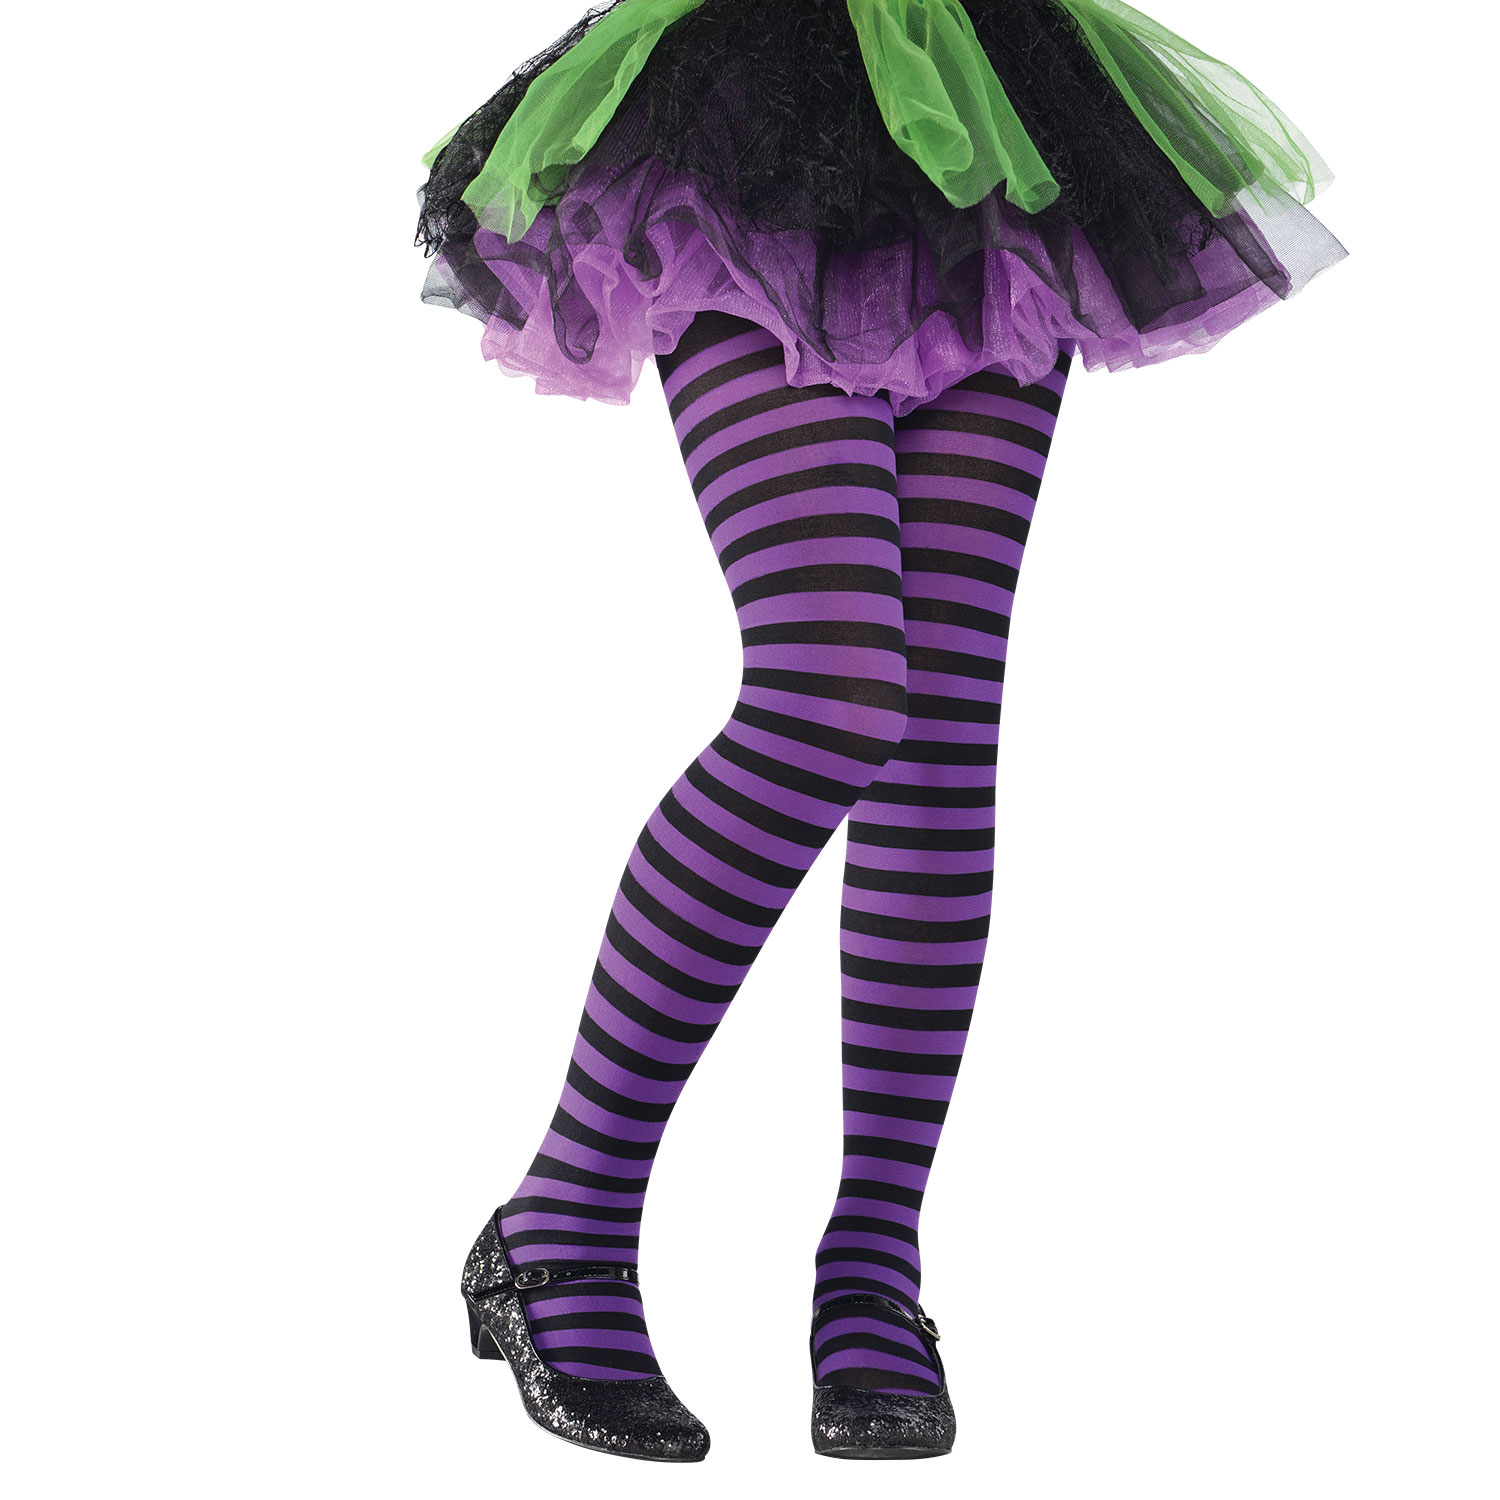 Purple and Black Striped Tights Witch Halloween Child Fancy Dress Accessory Kids